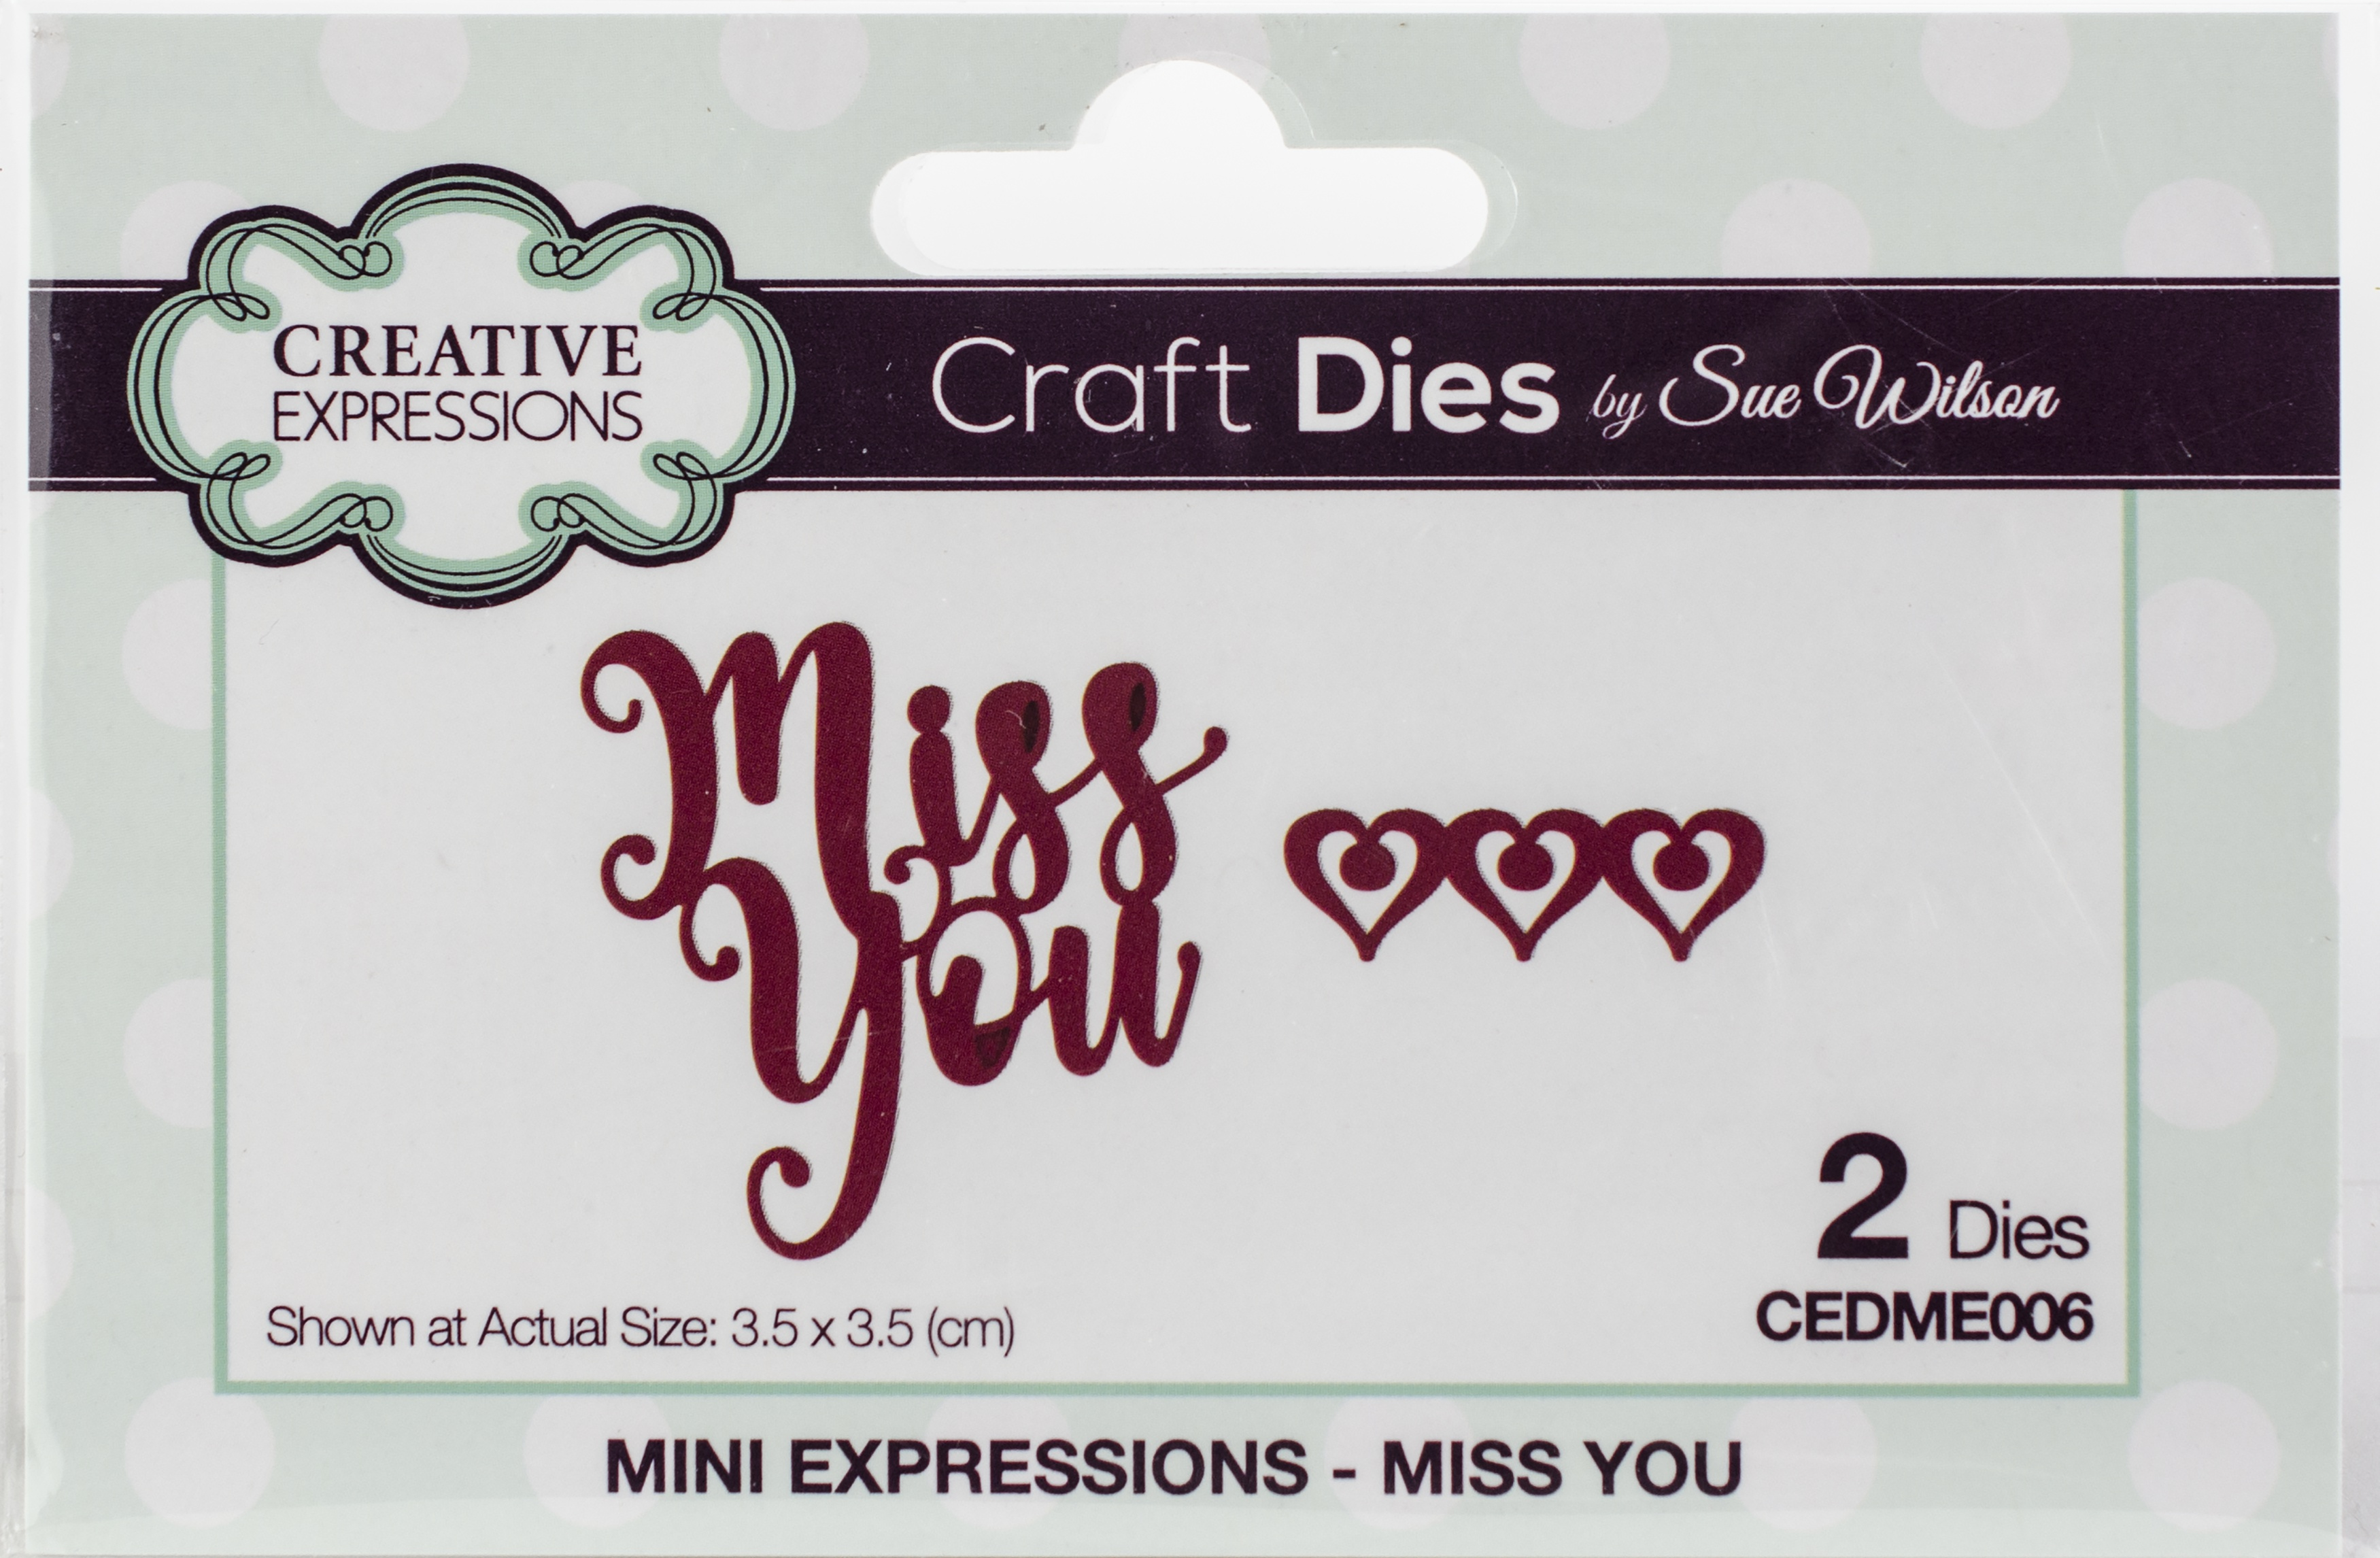 Creative Expressions Craft Dies By Sue Wilson-Mini Expressions-Miss You